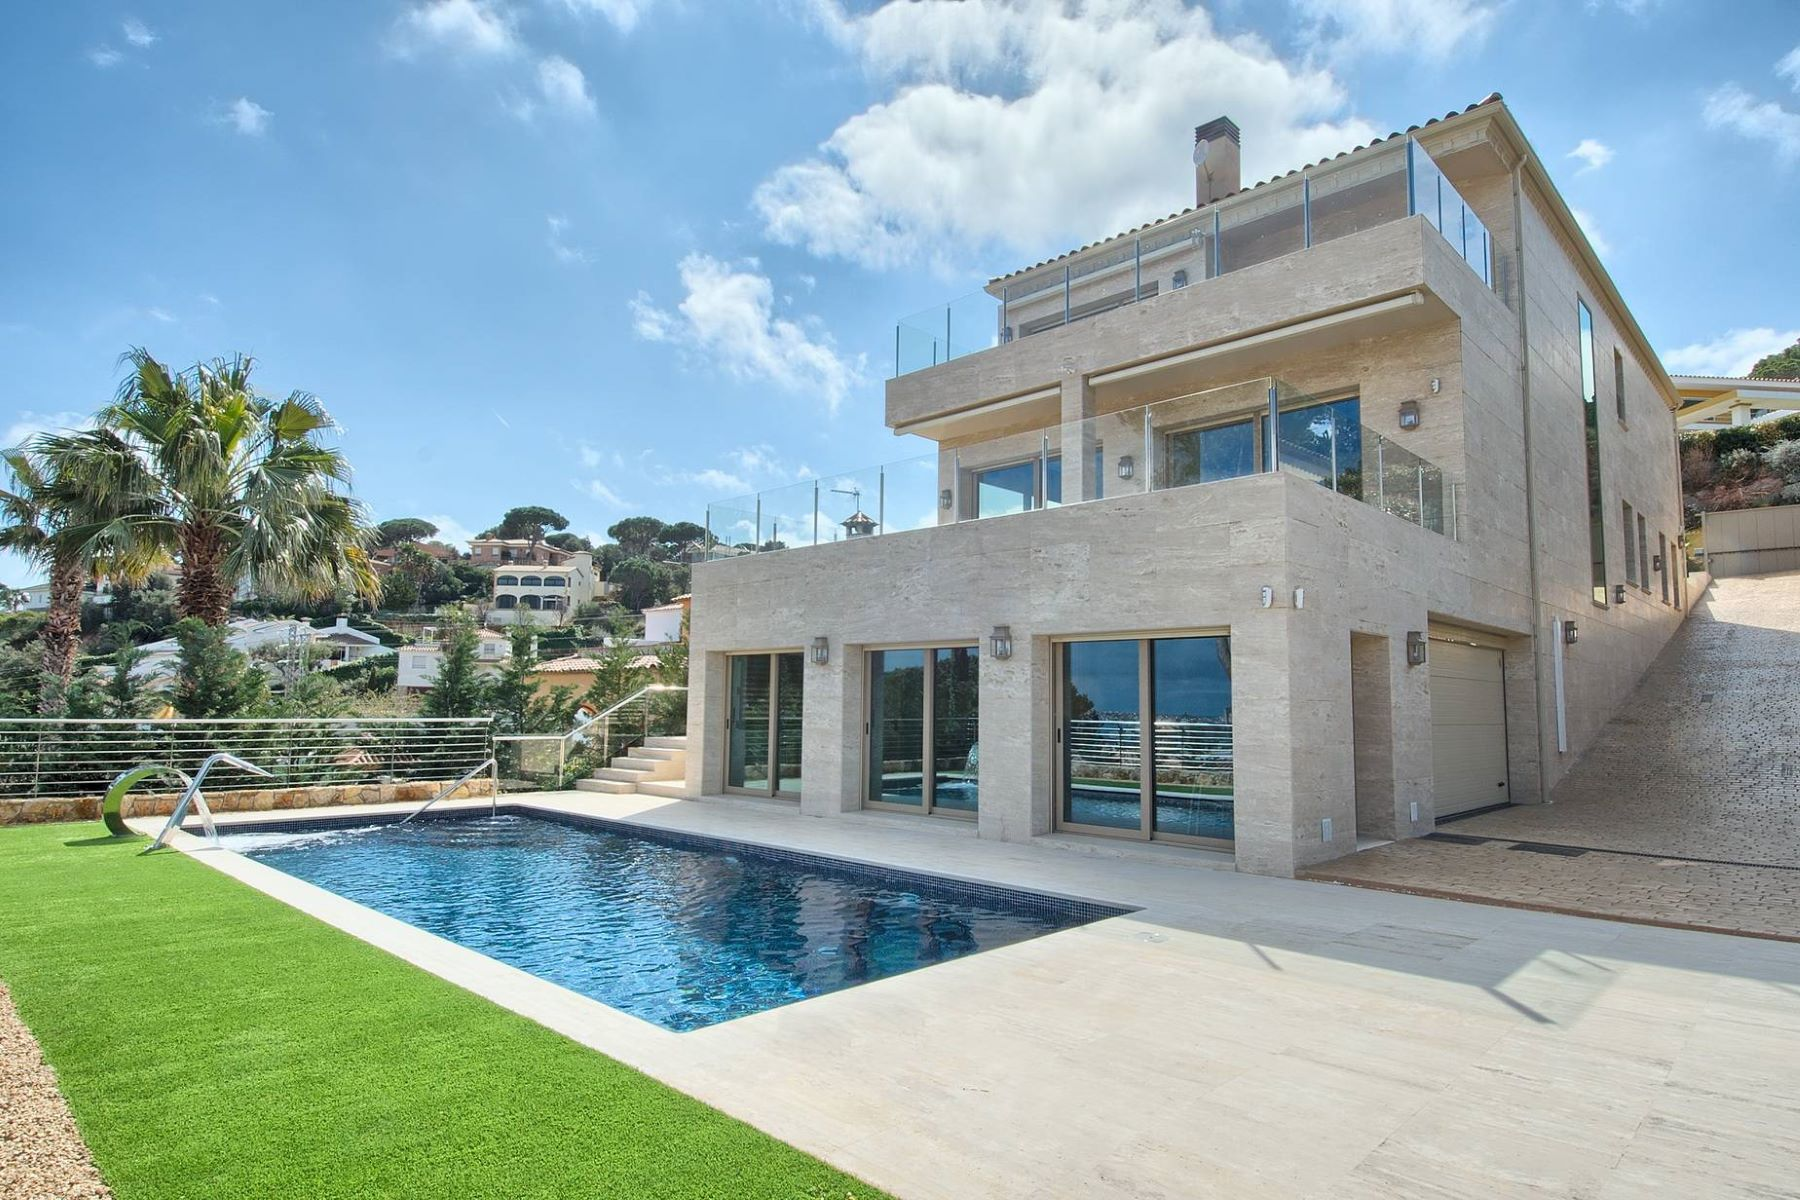 Single Family Homes for Sale at Spacious newly built villa with sea views Other Spain, Other Areas In Spain 17252 Spain